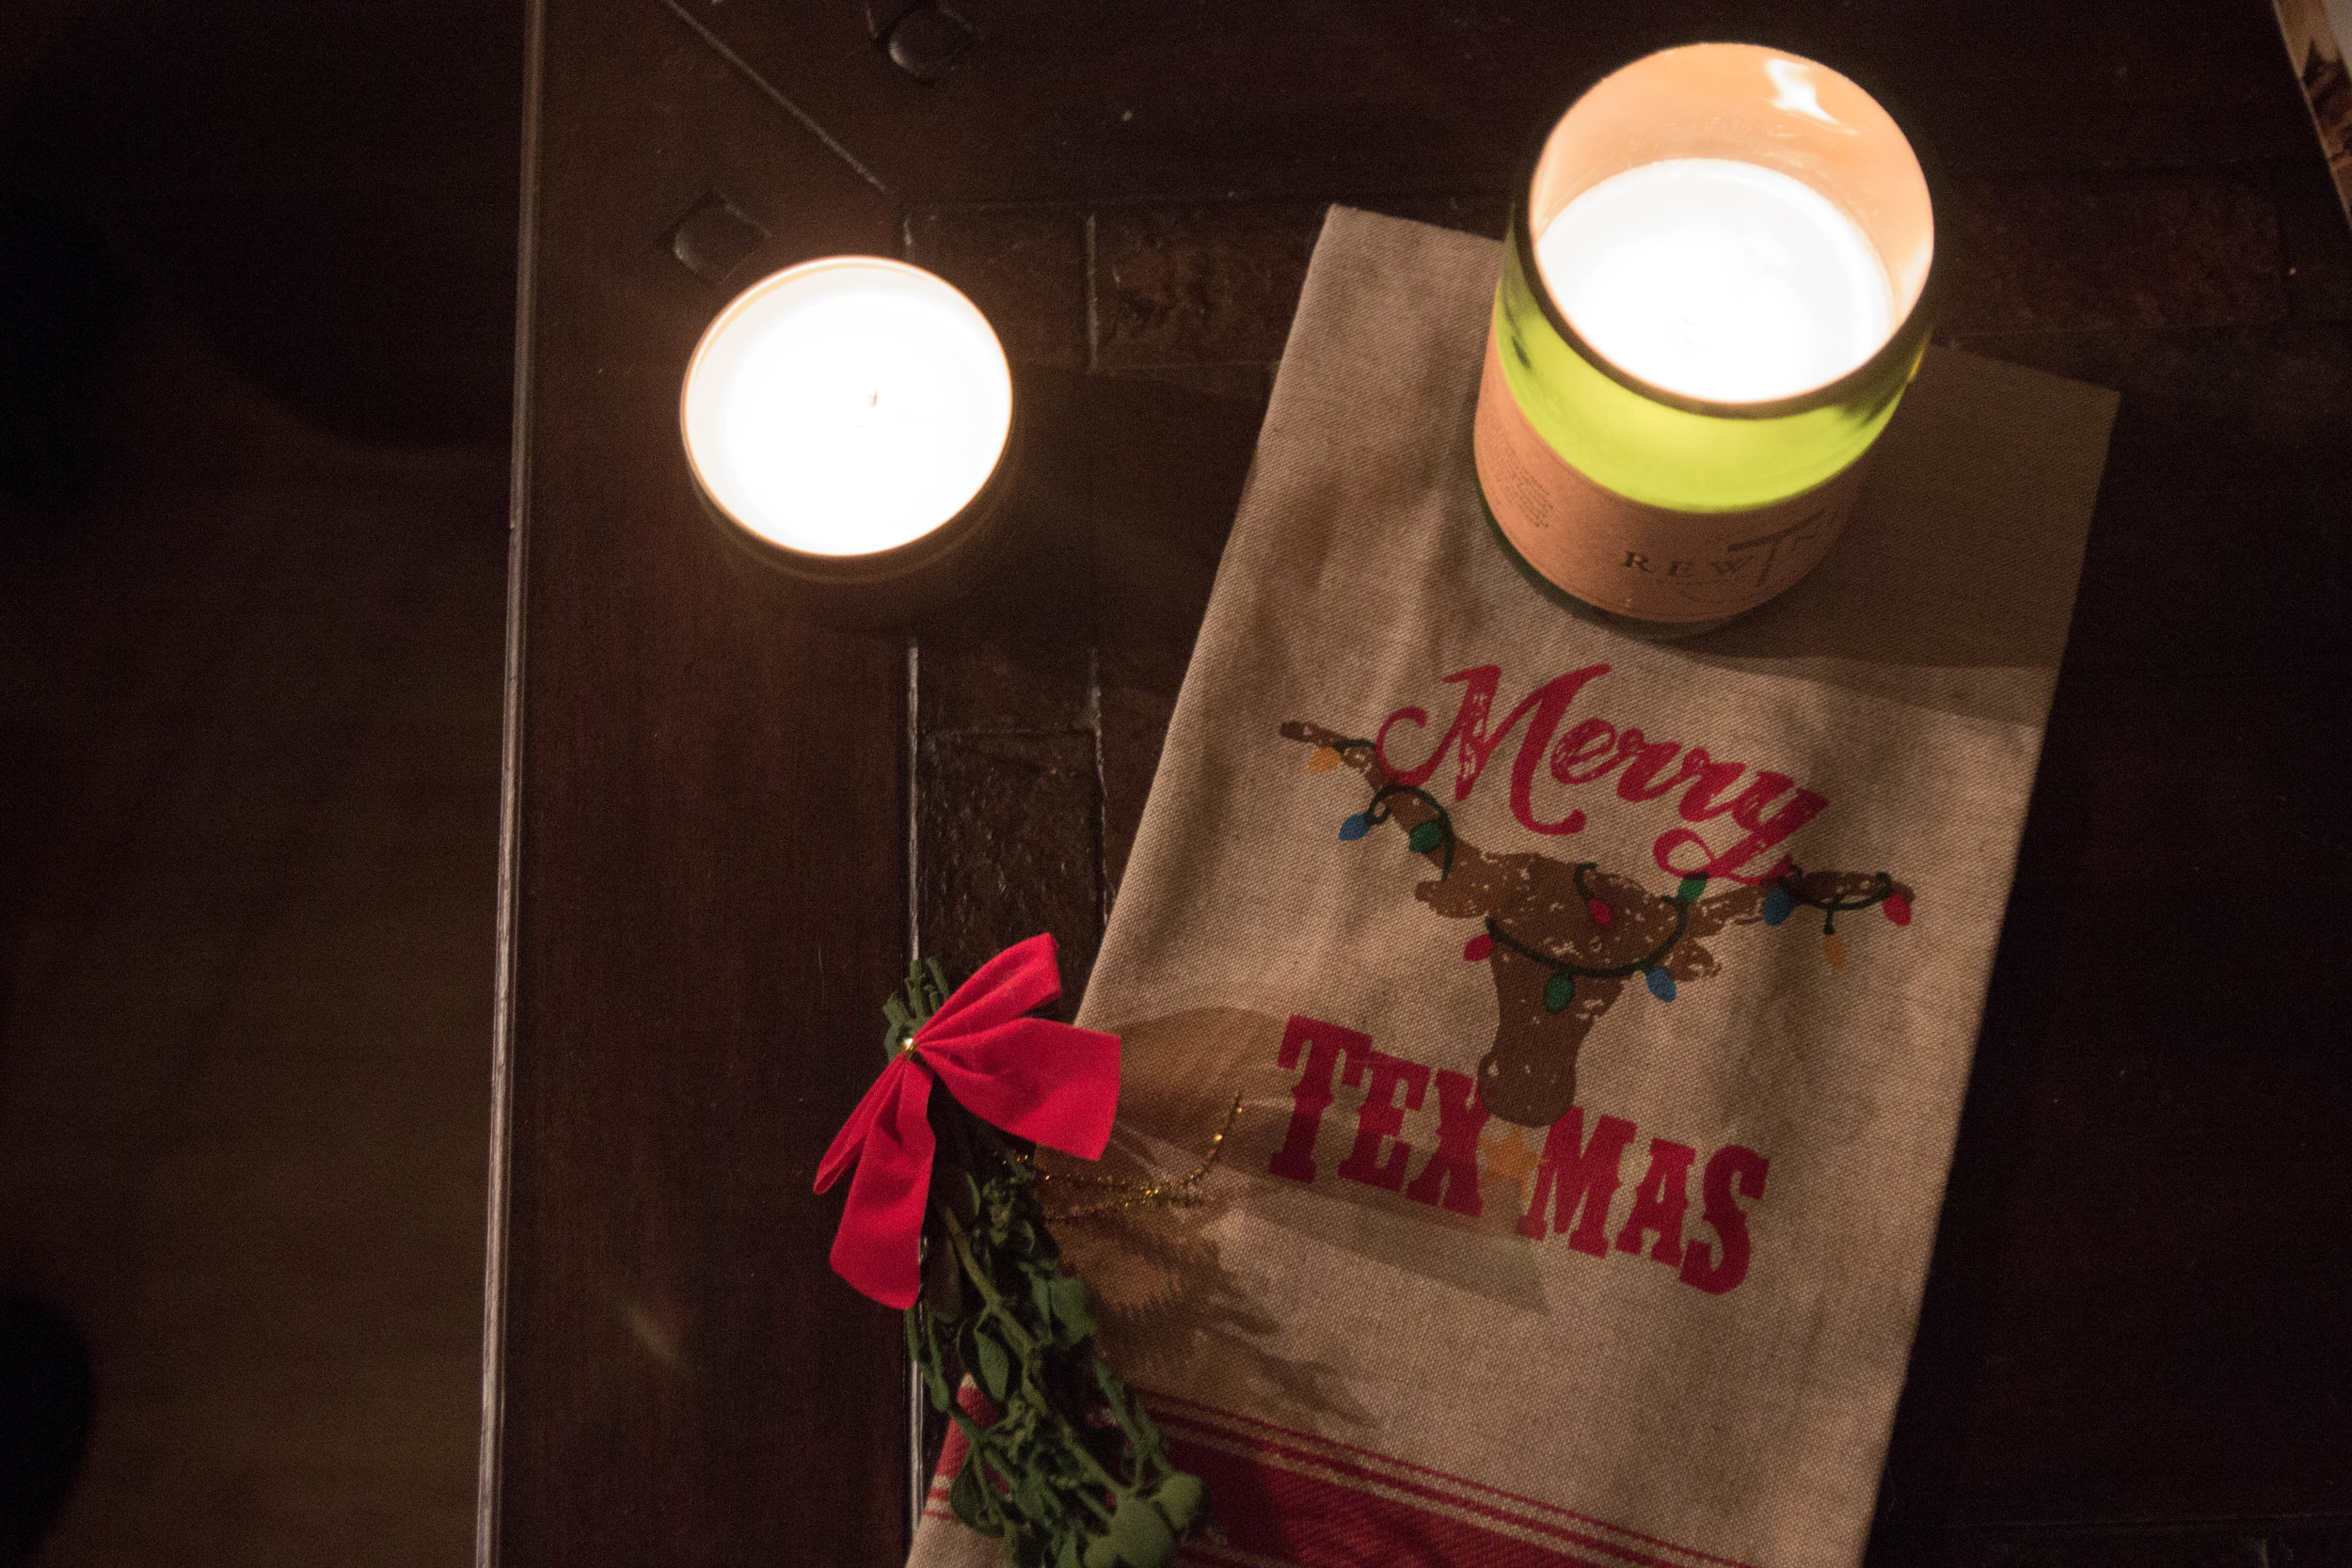 the best holiday candle scents, how to keep that holiday feeling, well after christmas, nest holiday candle, rewined wine under the tree candle, benjamin soap co. pumpkin spice candle, merry texmas